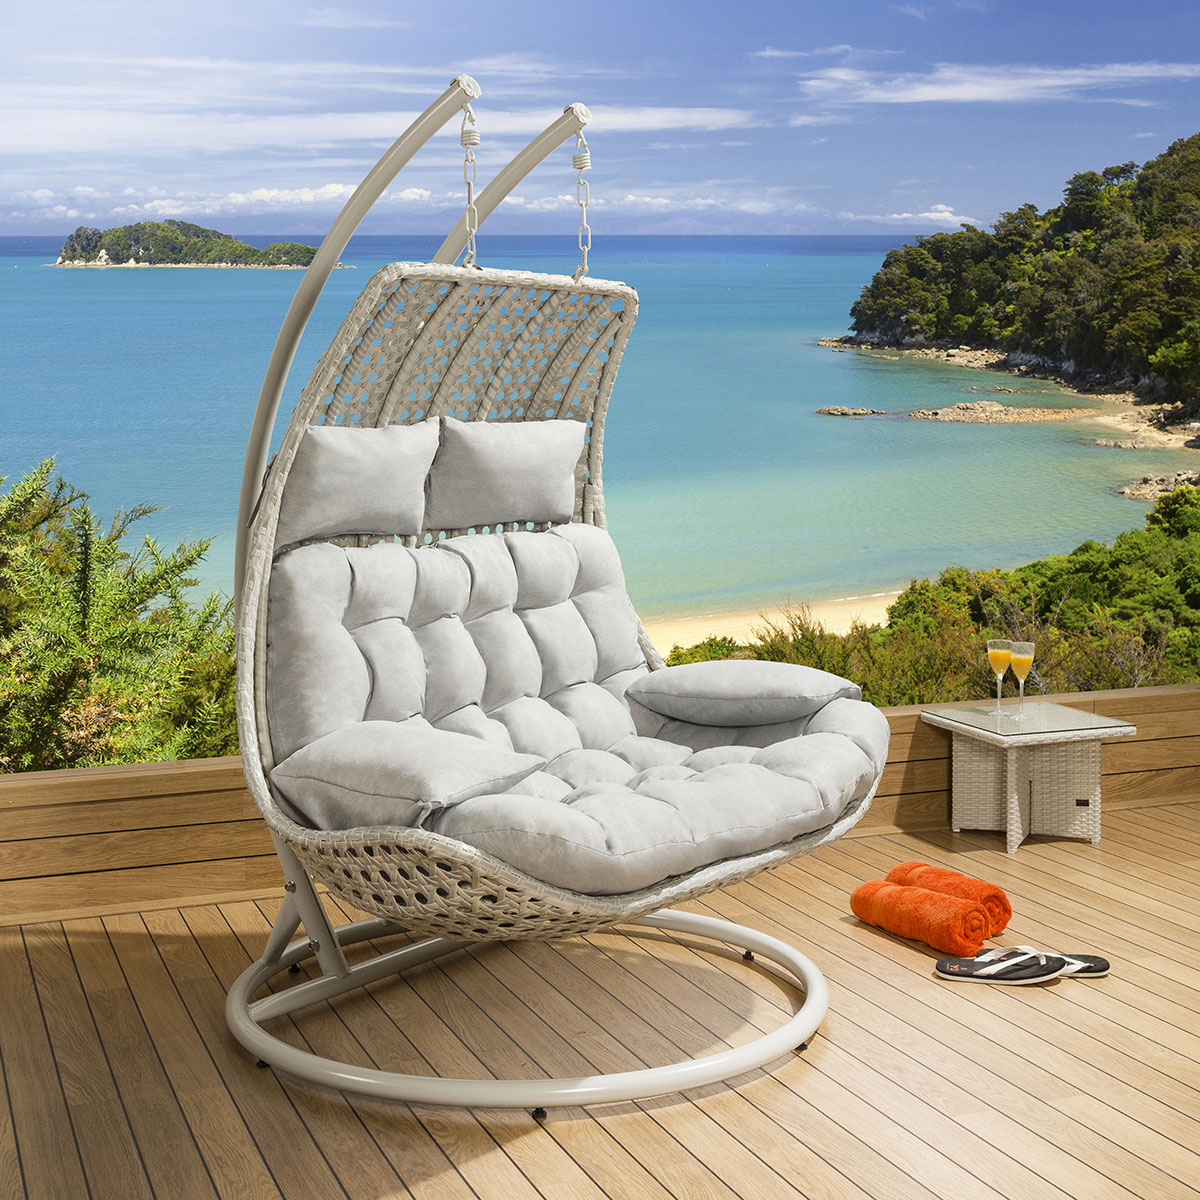 Outdoor Rattan 2 Person Garden Hanging Chair Sunbed